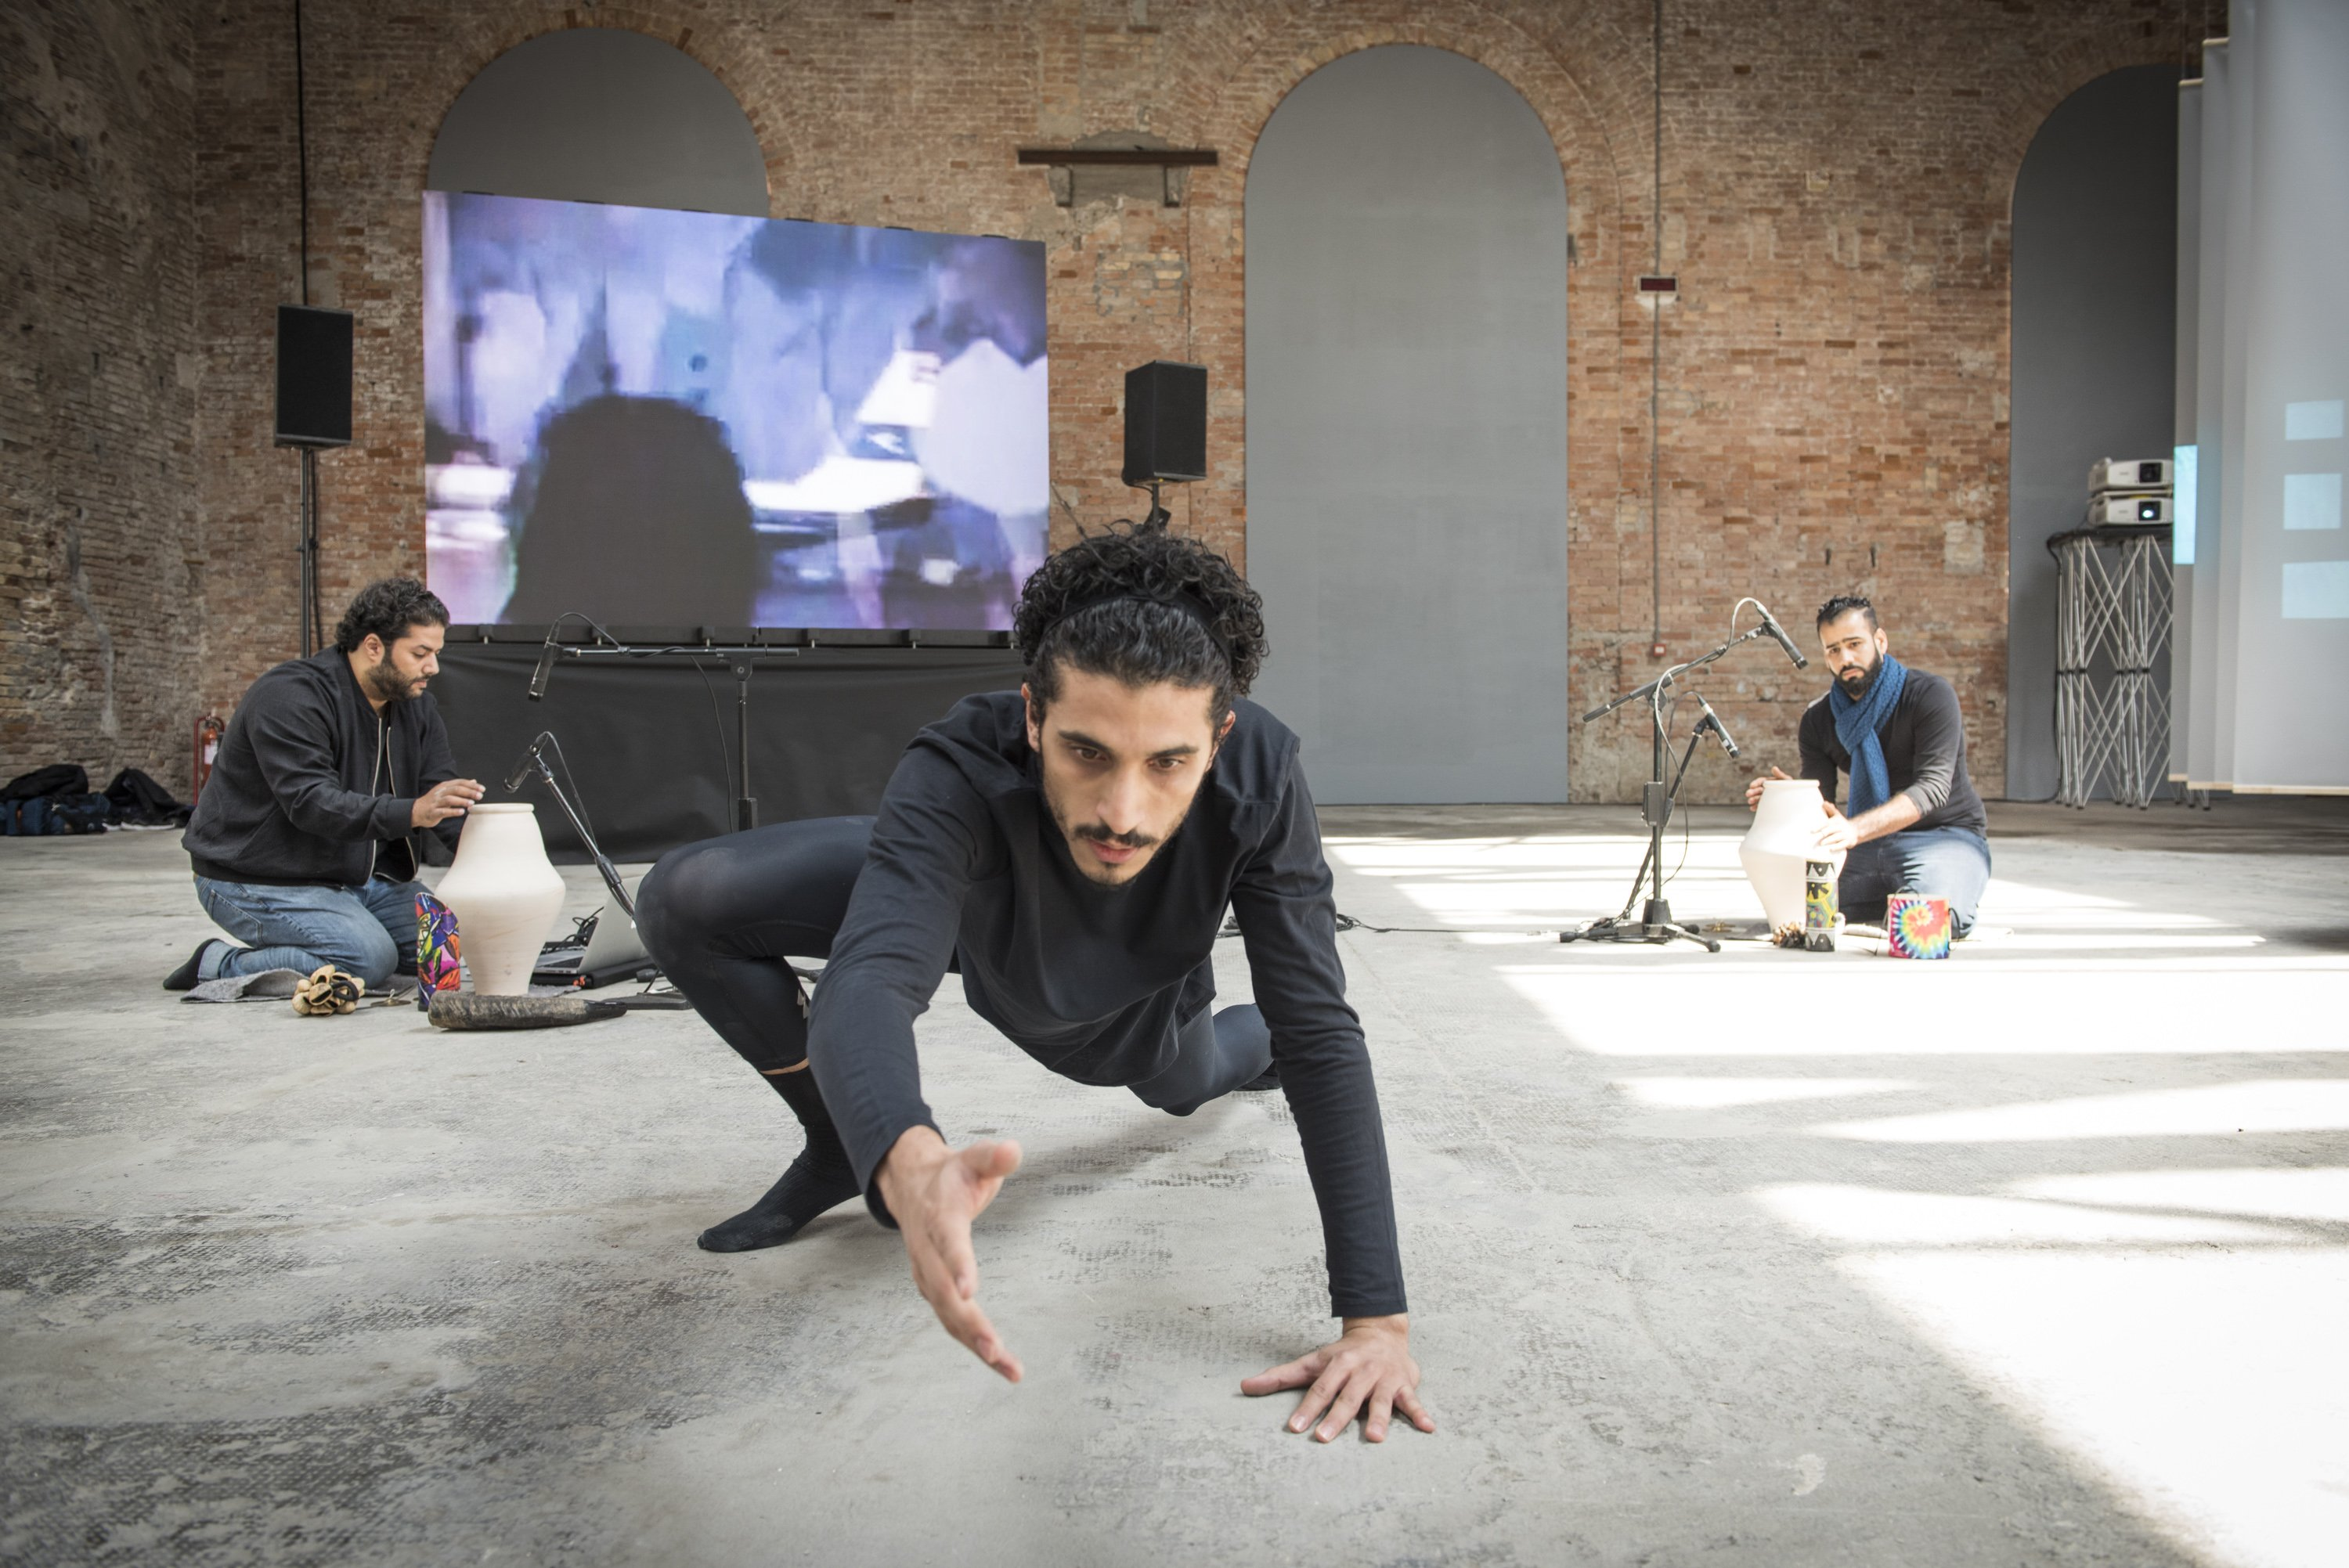 Screening And Performance, Hasan Hujairi, Hashen Al Alawi, Ahmed Saeed